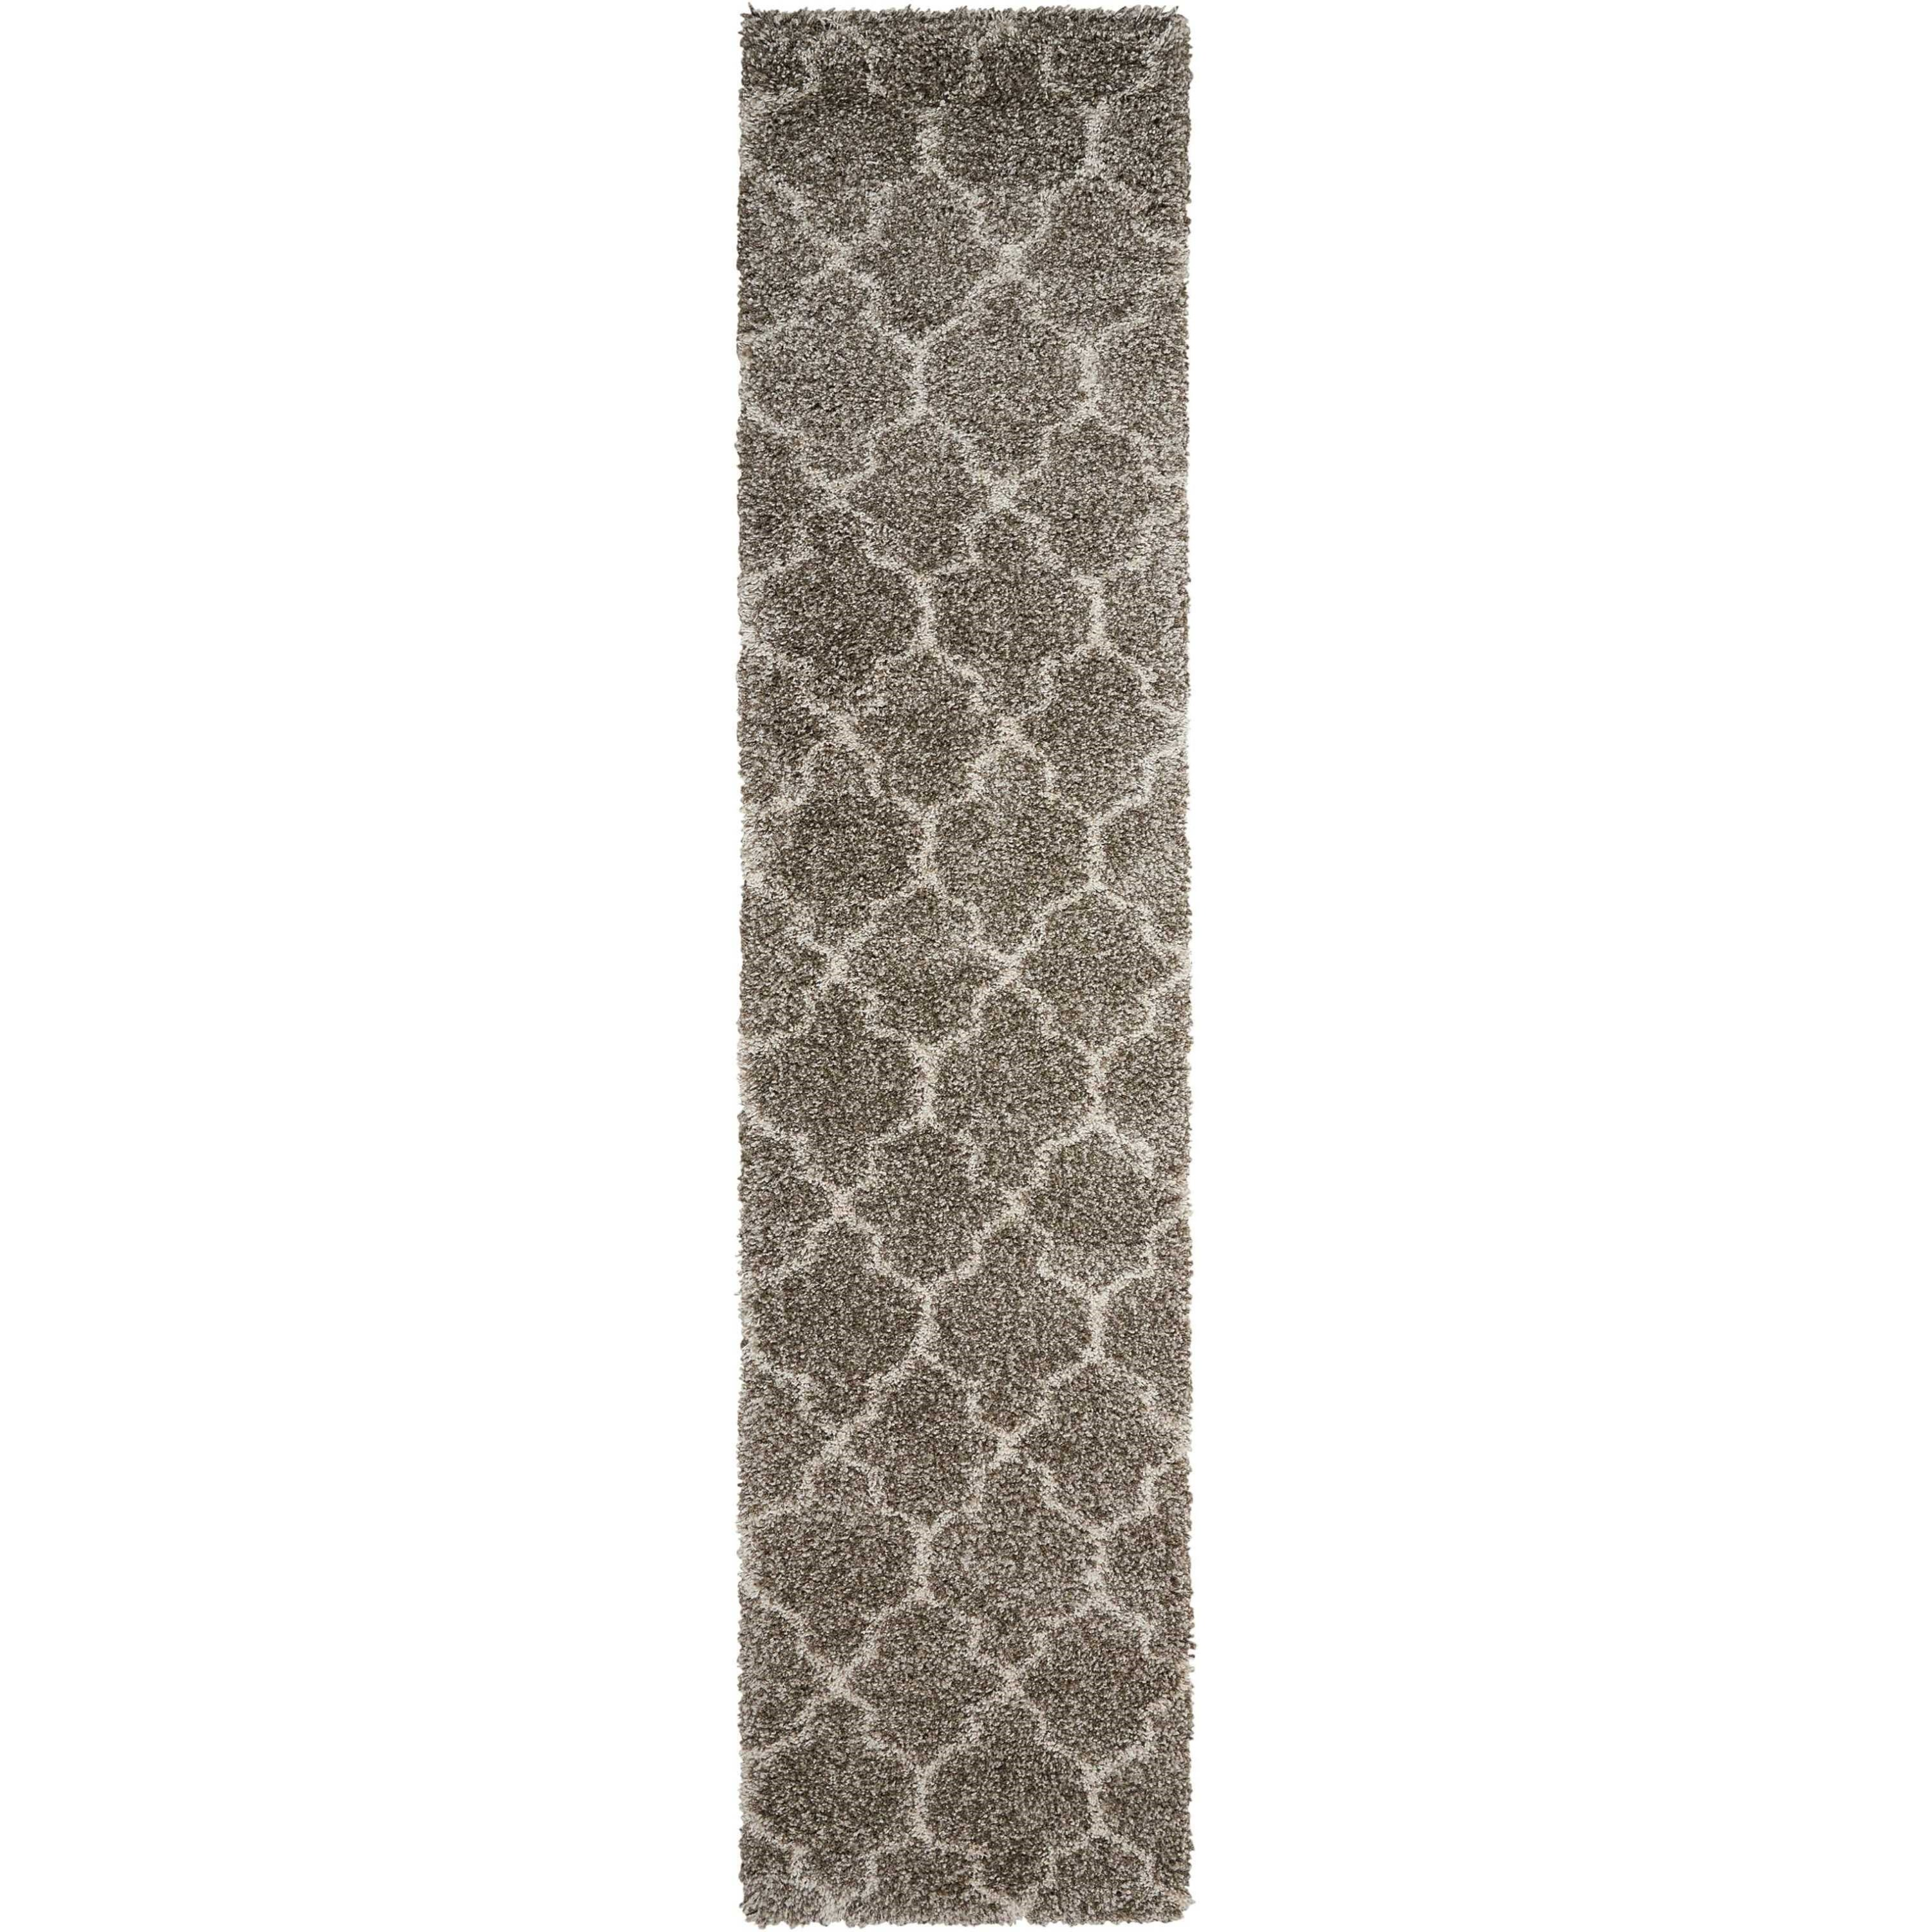 Amore Amore AMOR2 Beige 10' Runner  Hallway Rug by Nourison at Home Collections Furniture